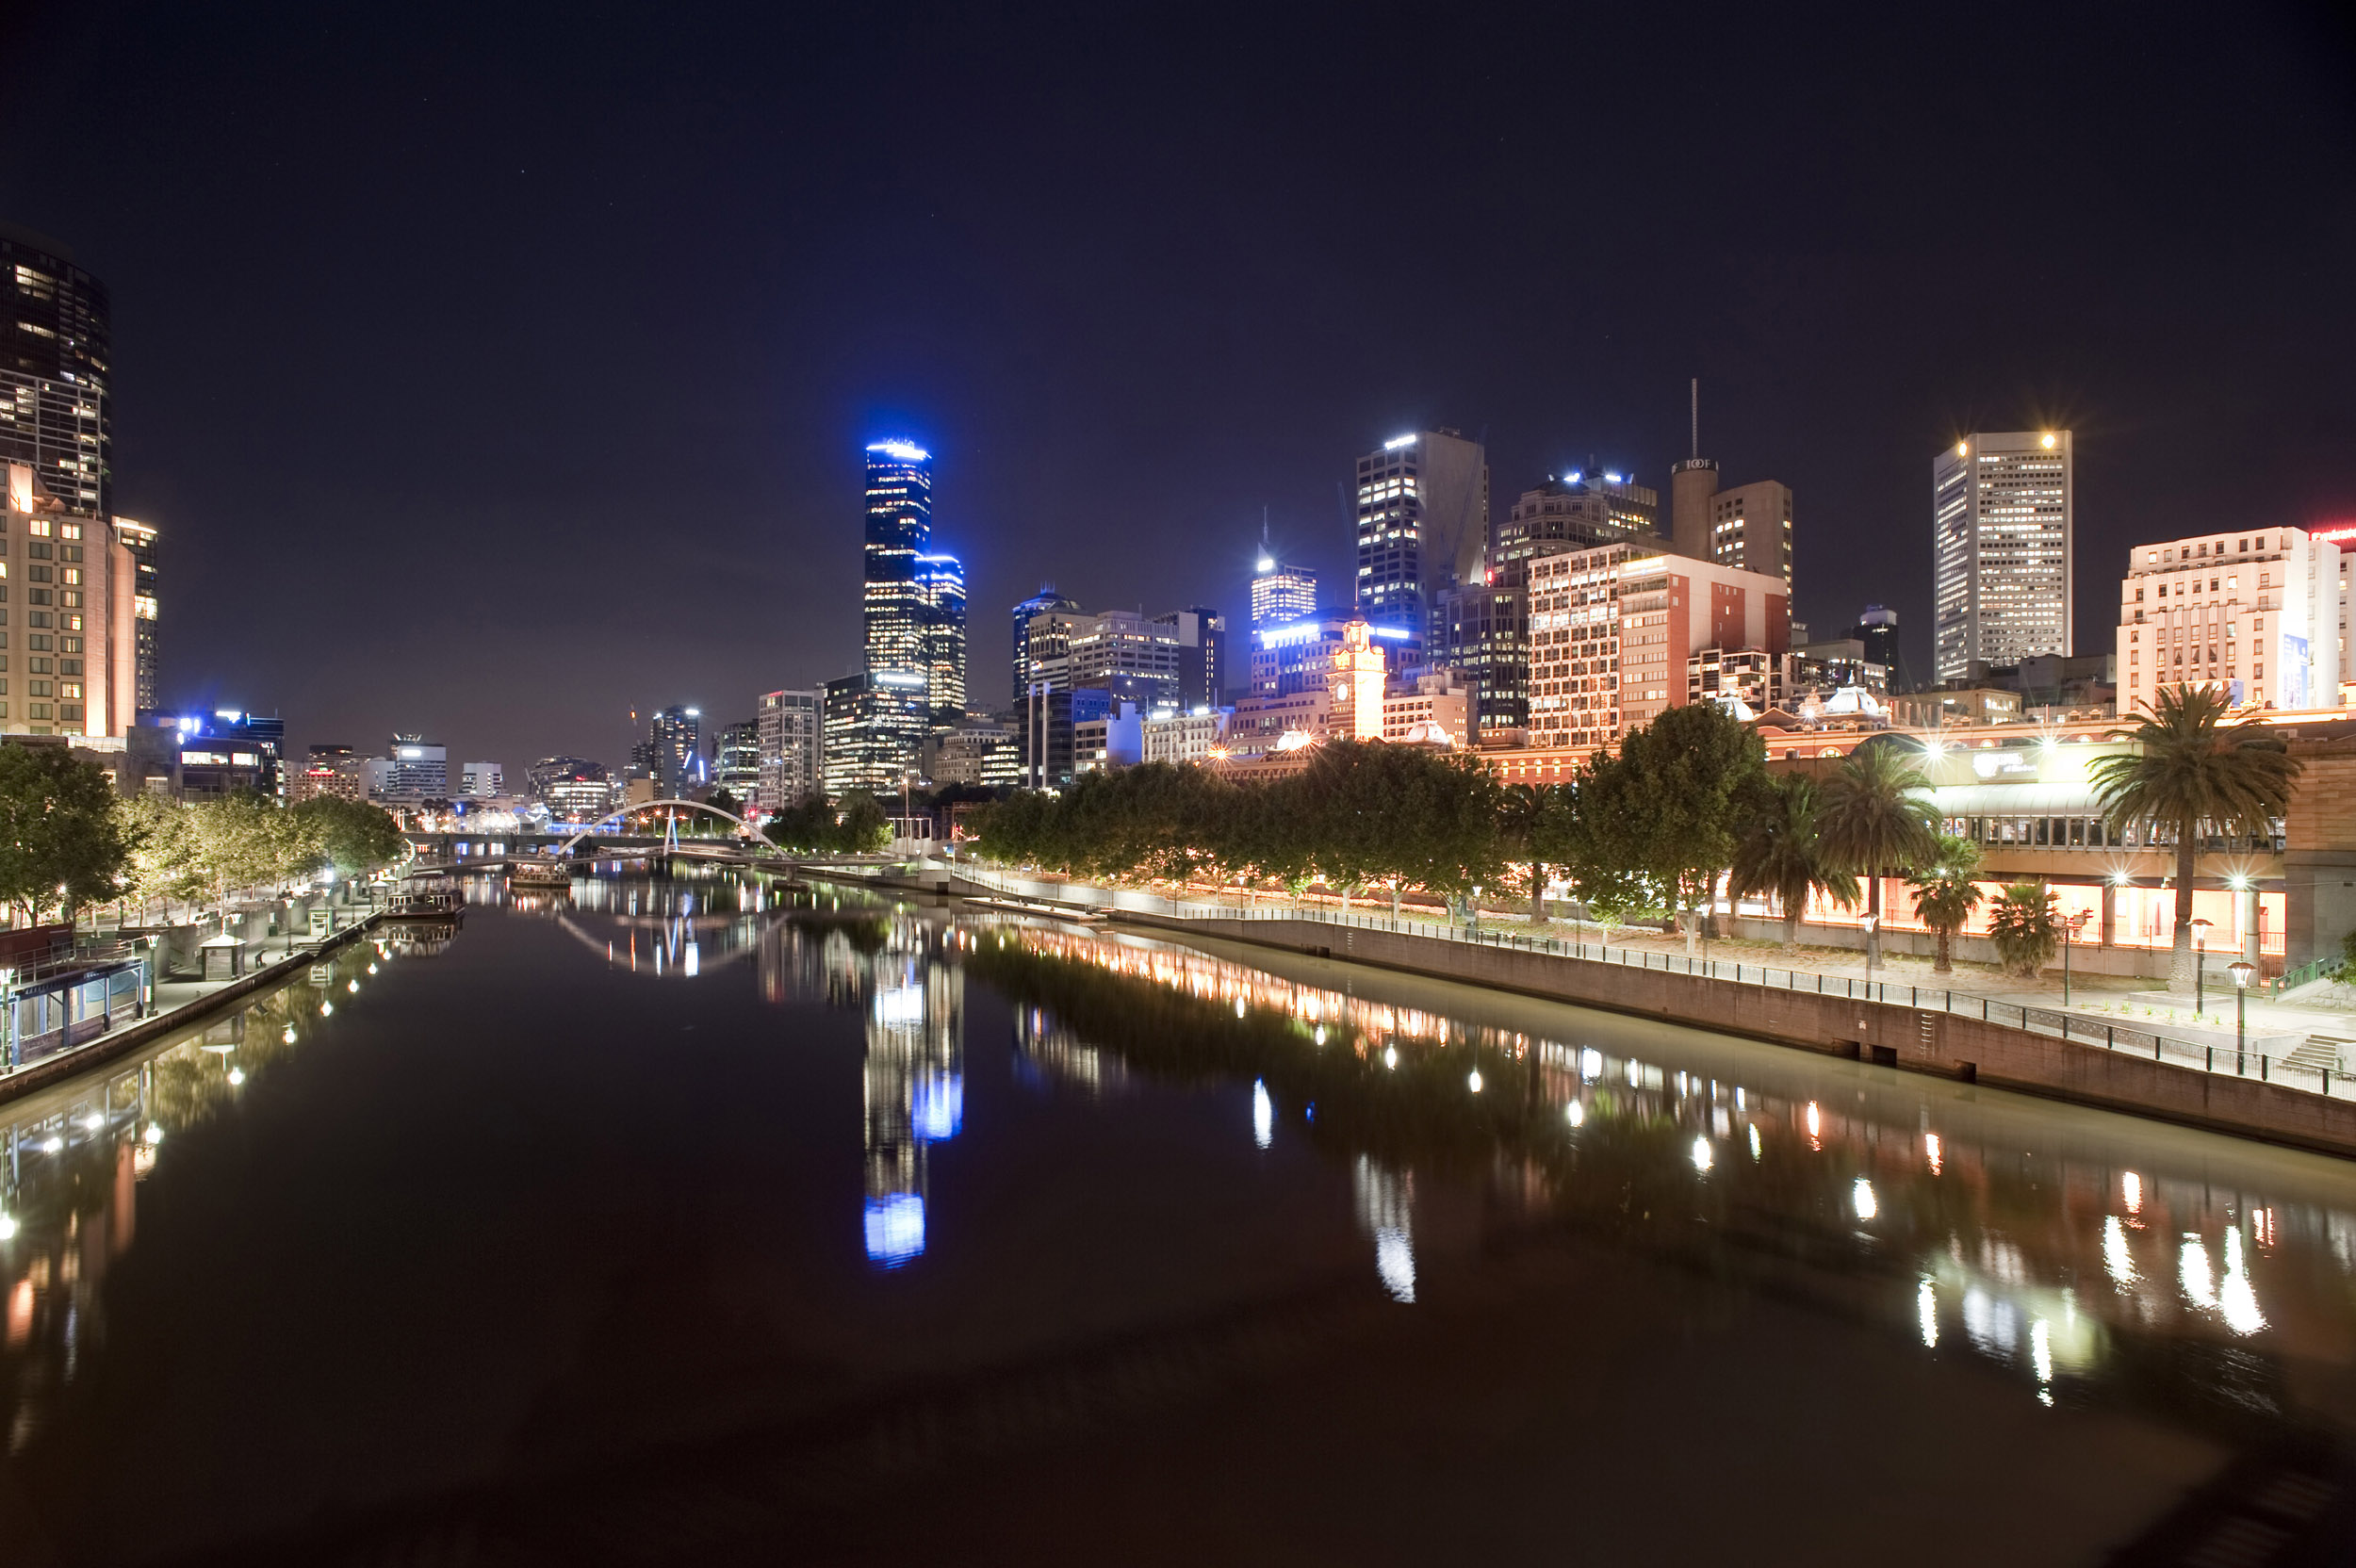 A beautiful view of Melbourne city night lights and the calm, tranquil Yarra river.